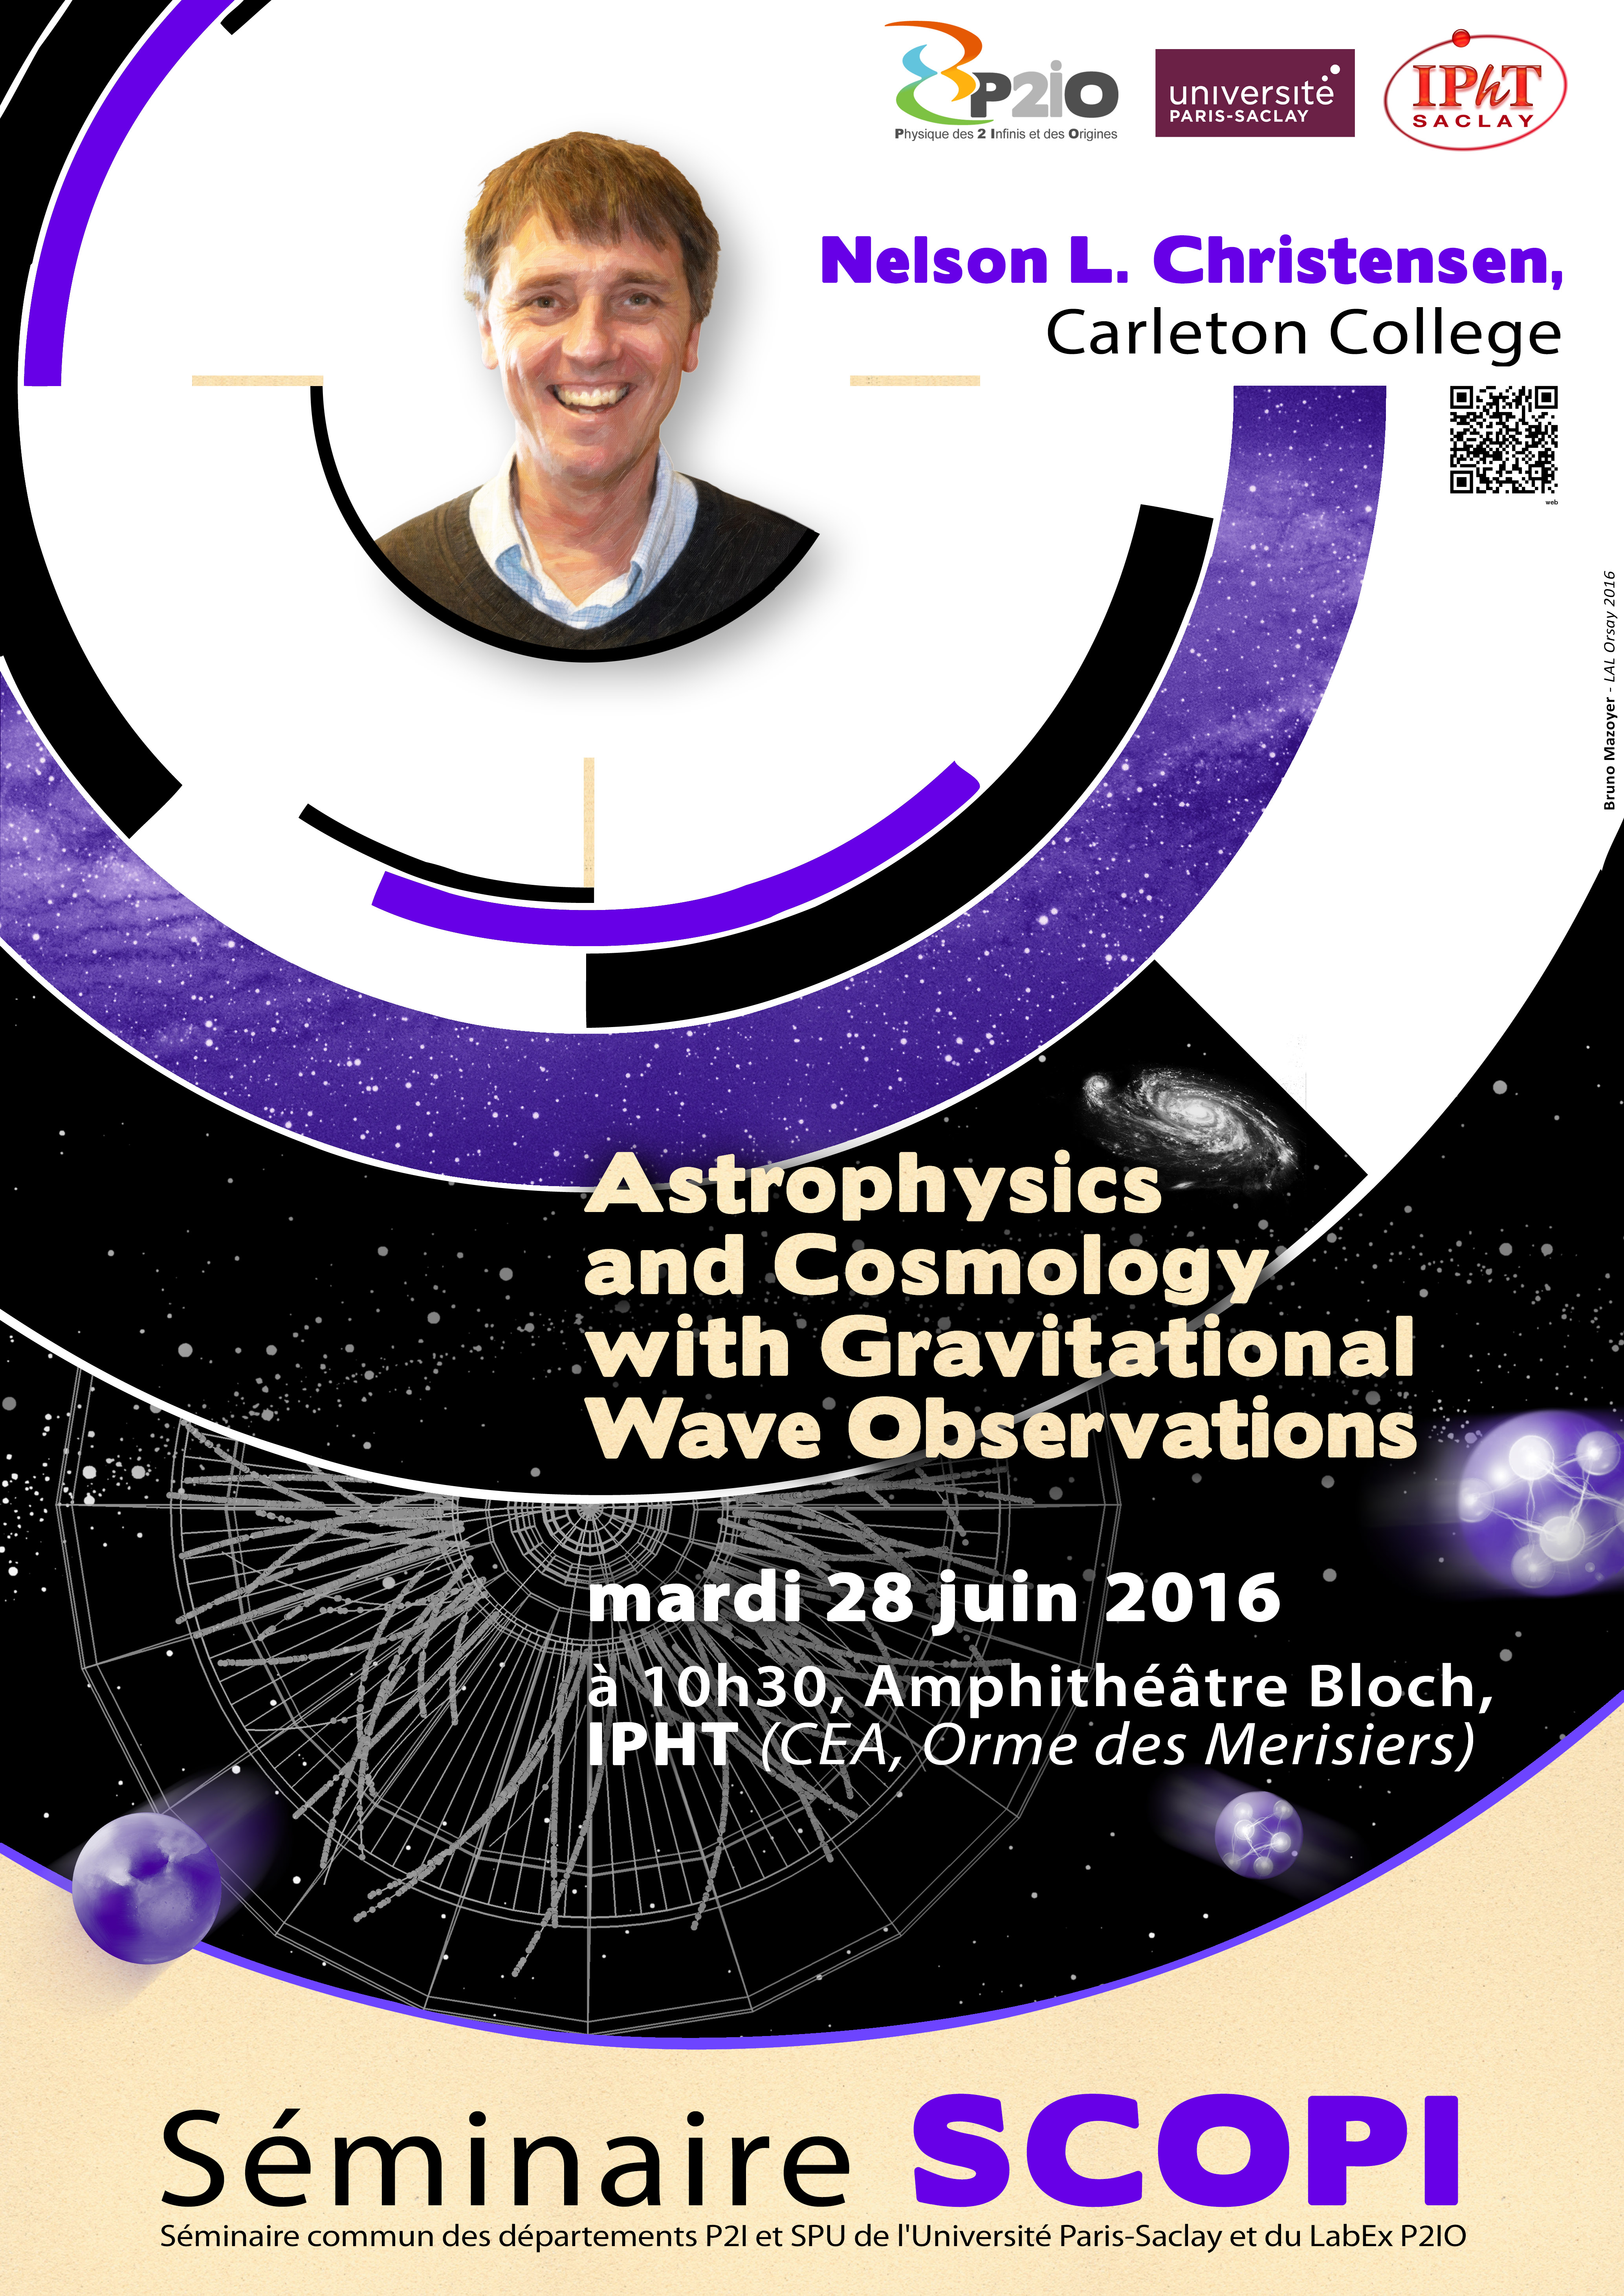 Astrophysics and Cosmology with Gravitational Wave Observations, par le Pr Nelson Christensen (Carleton College Northfield, MI)